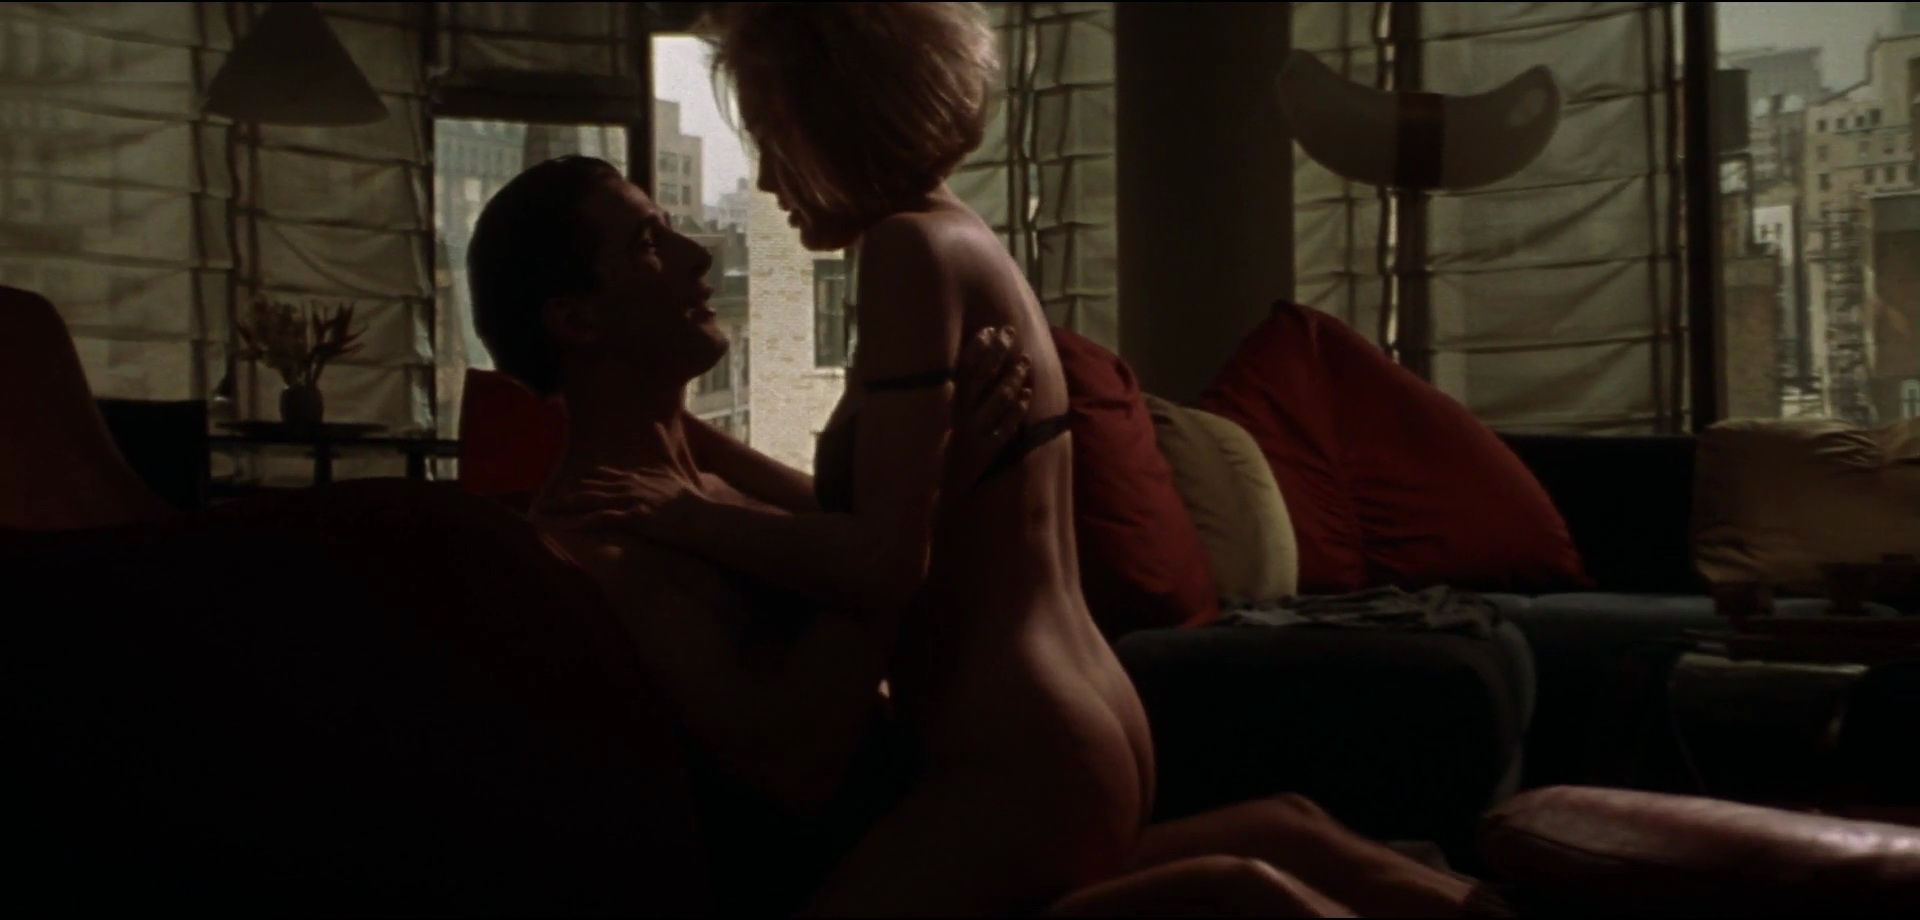 sharon stone with michael douglas  Porn Video 532  Tube8